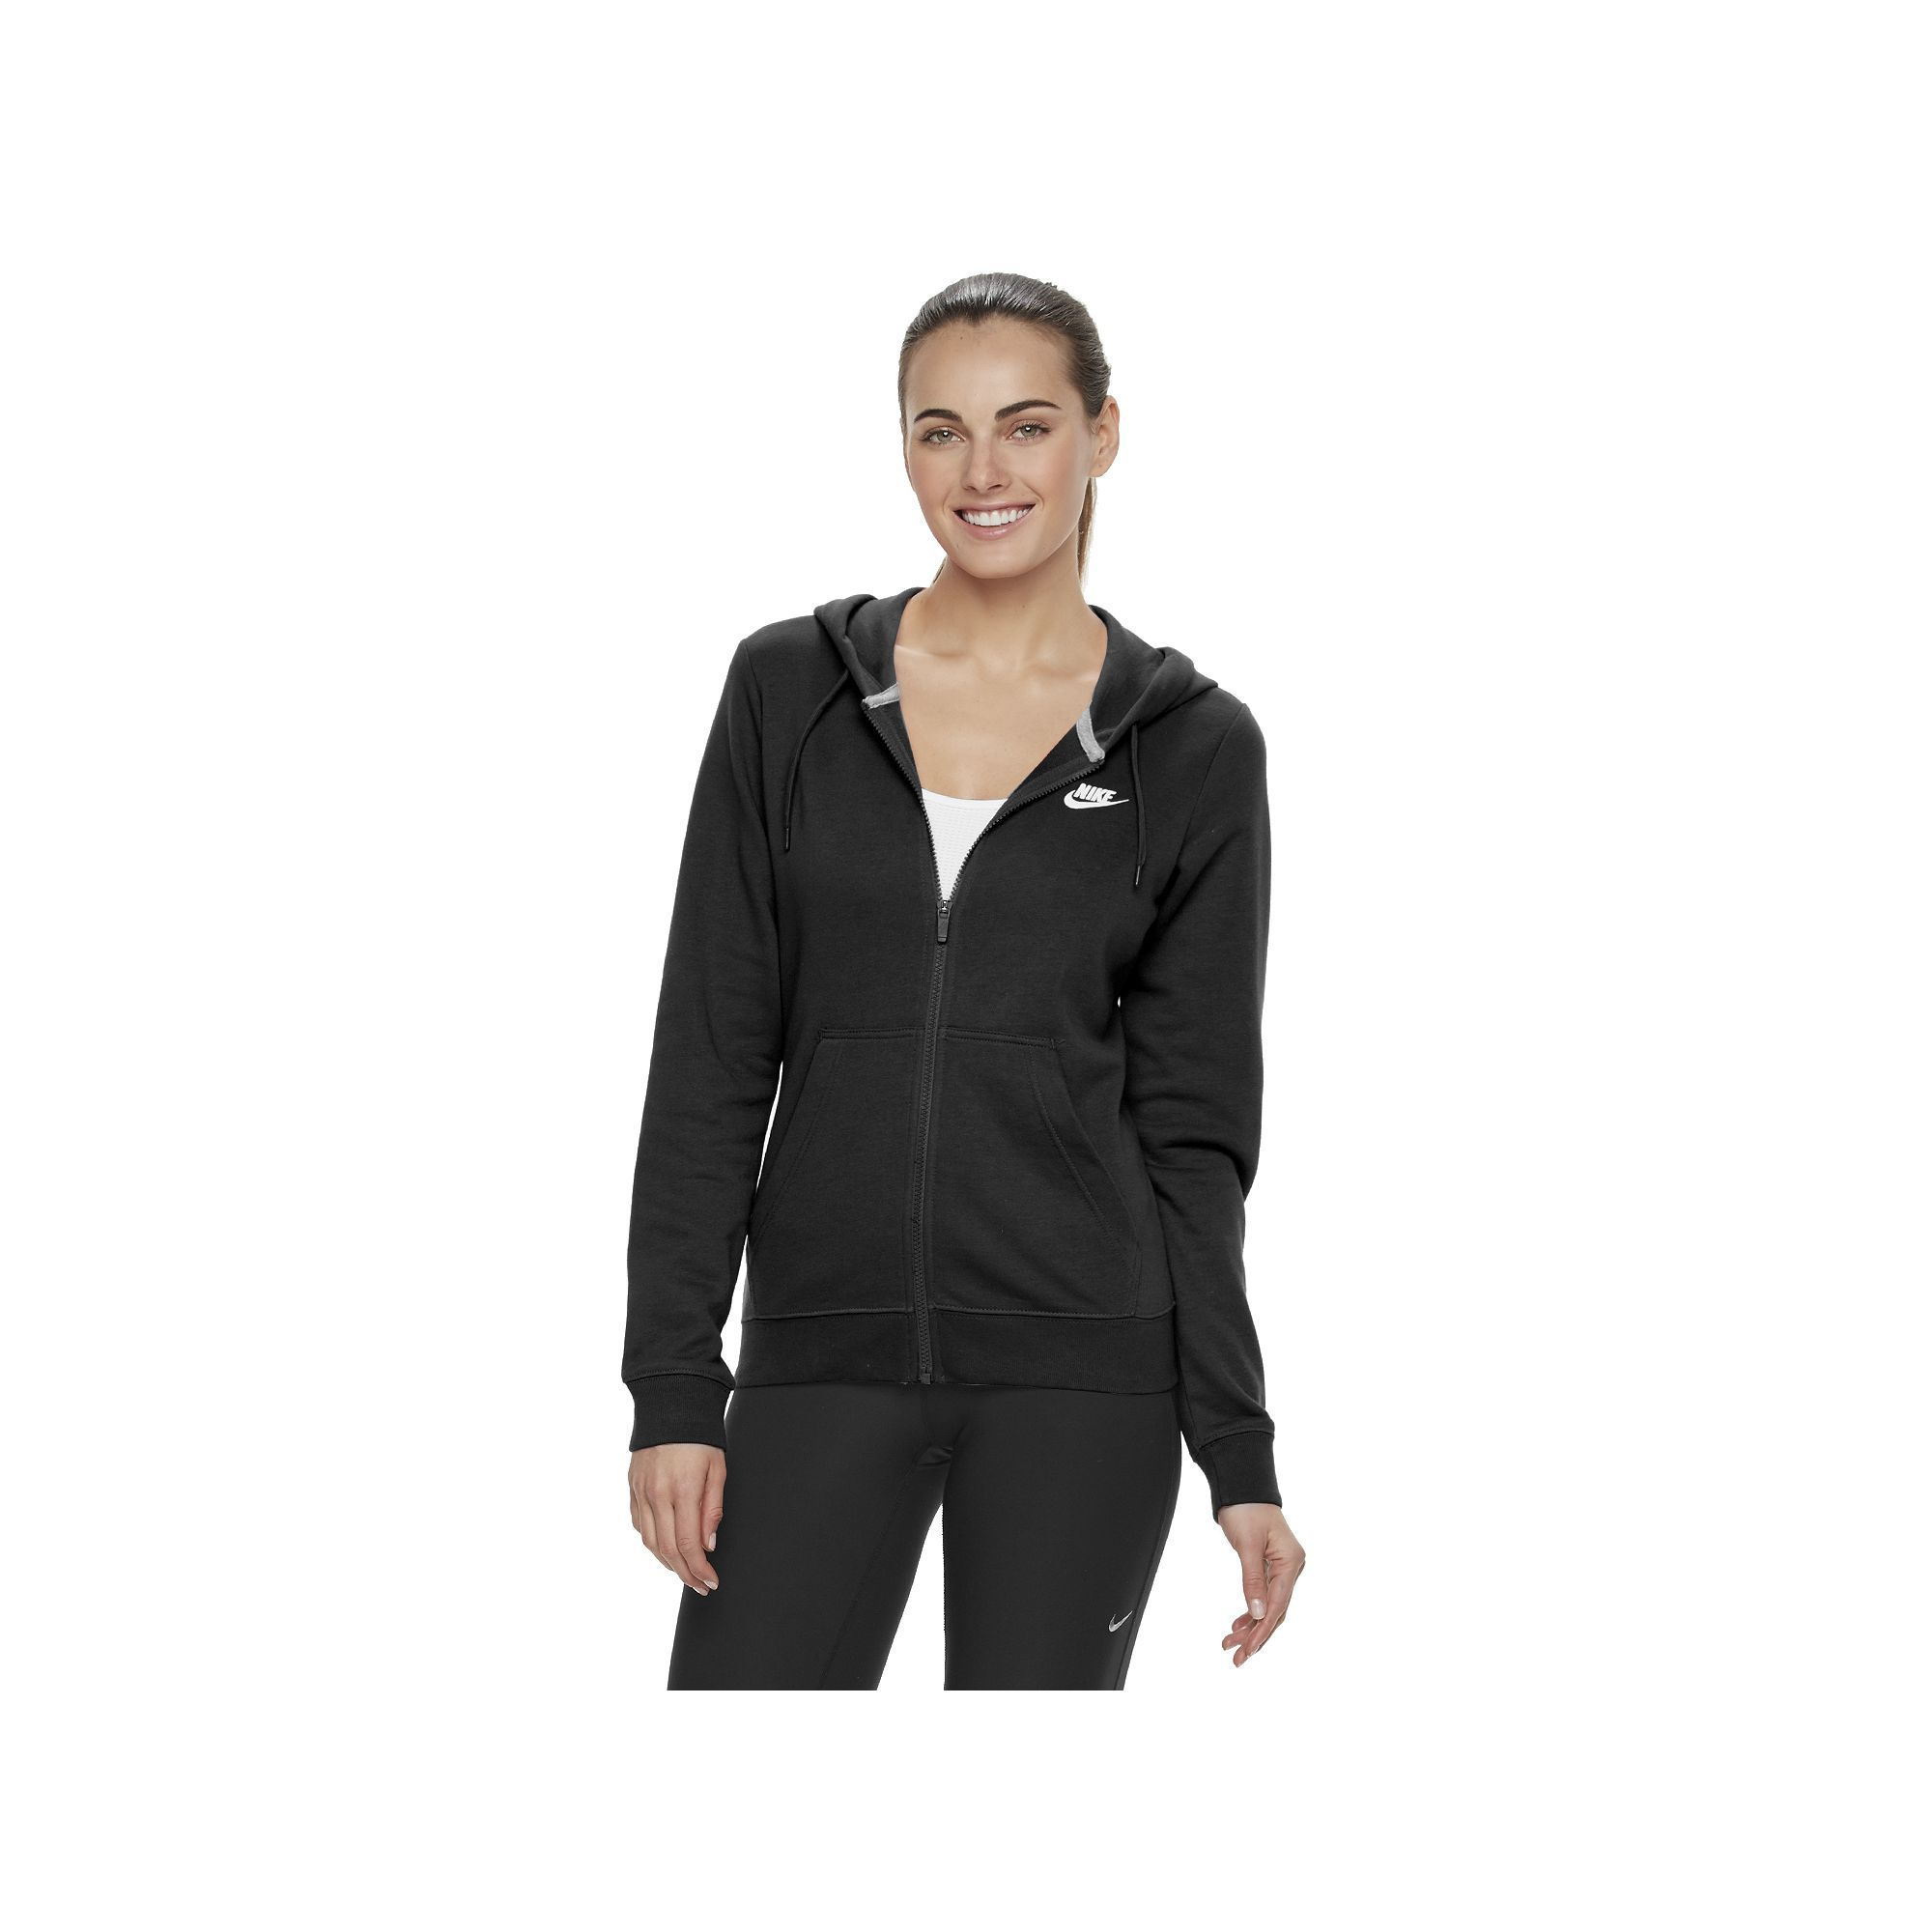 87a7d98e2c46 Women s Nike French Terry Zip Up Hoodie